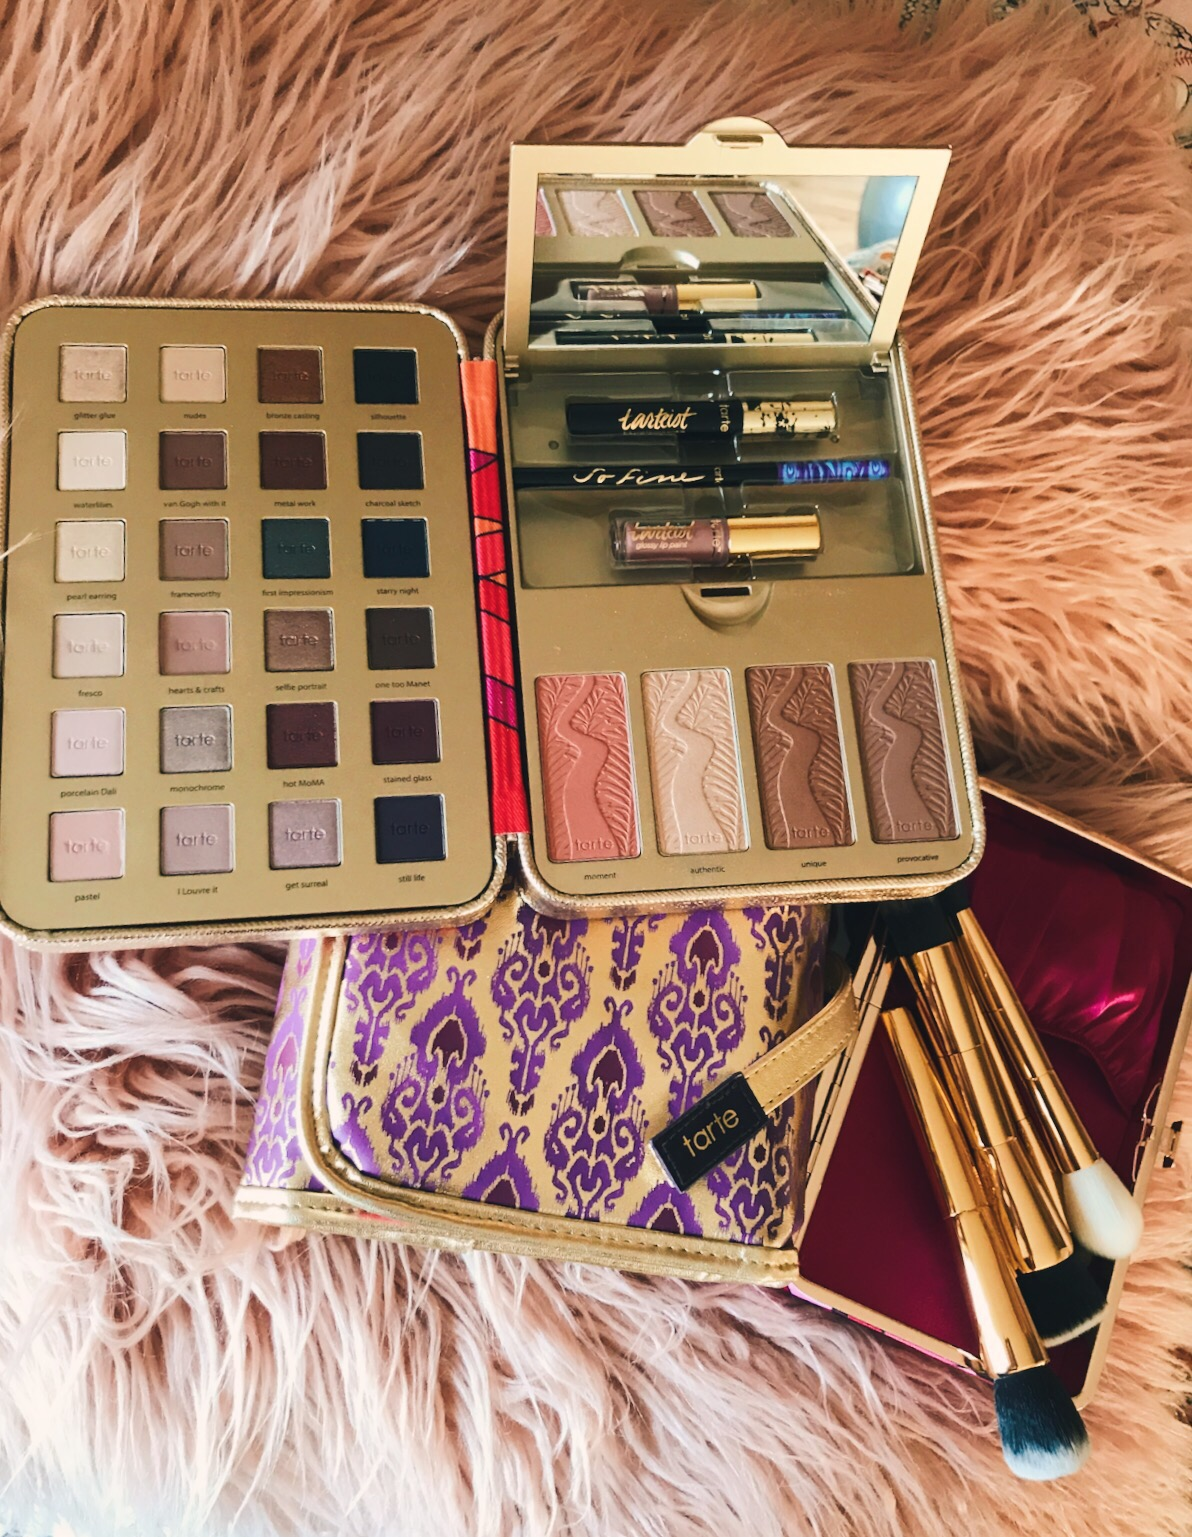 Tarte Cosmetics 1 Day Sale Must Haves With Wildflowers